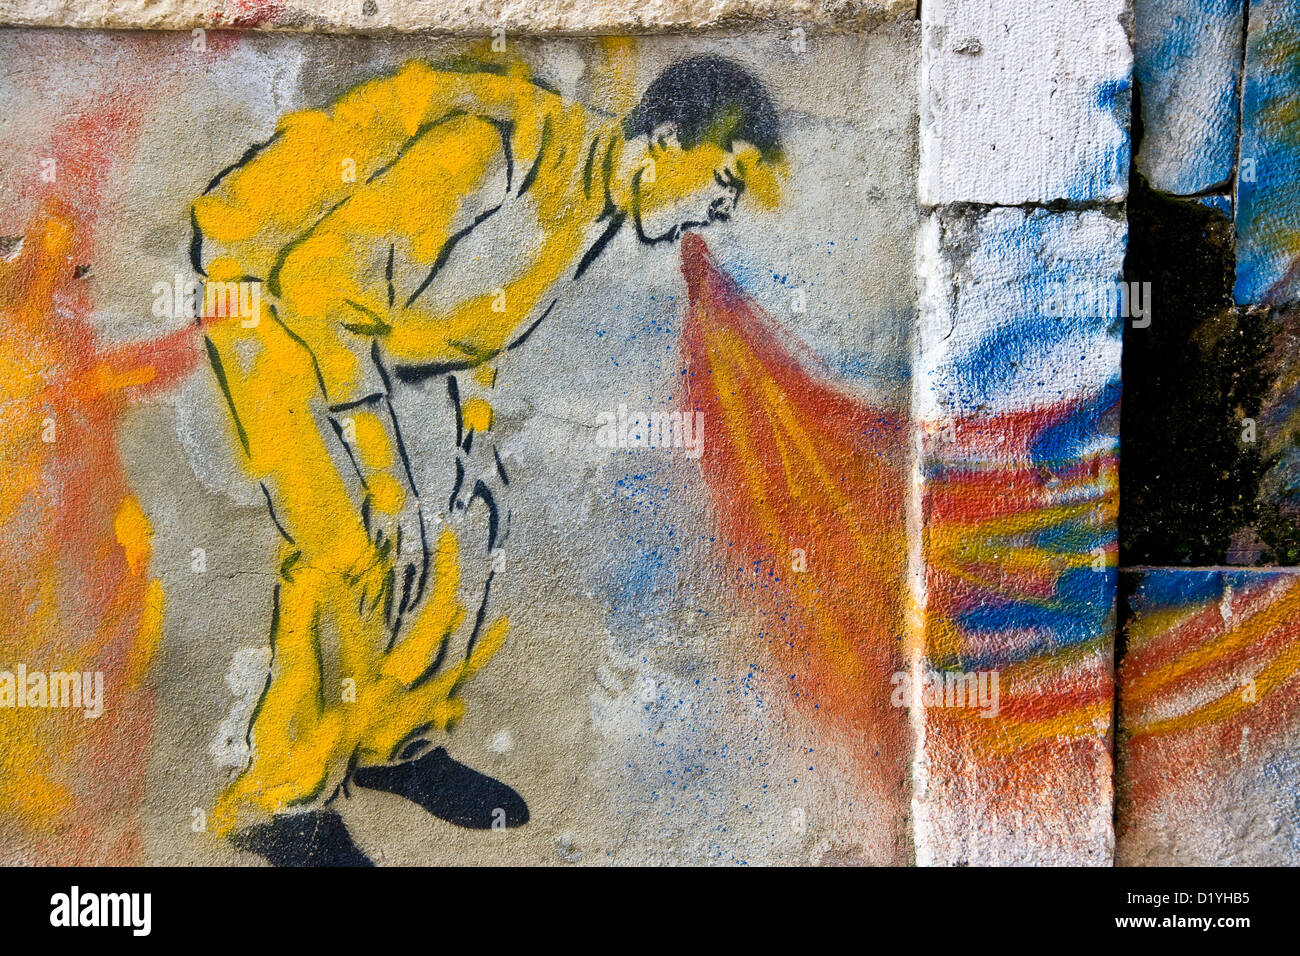 Bright colored vibrant urban graffiti street art of man vomiting on concrete wall Lisbon Portugal Europe Stock Photo